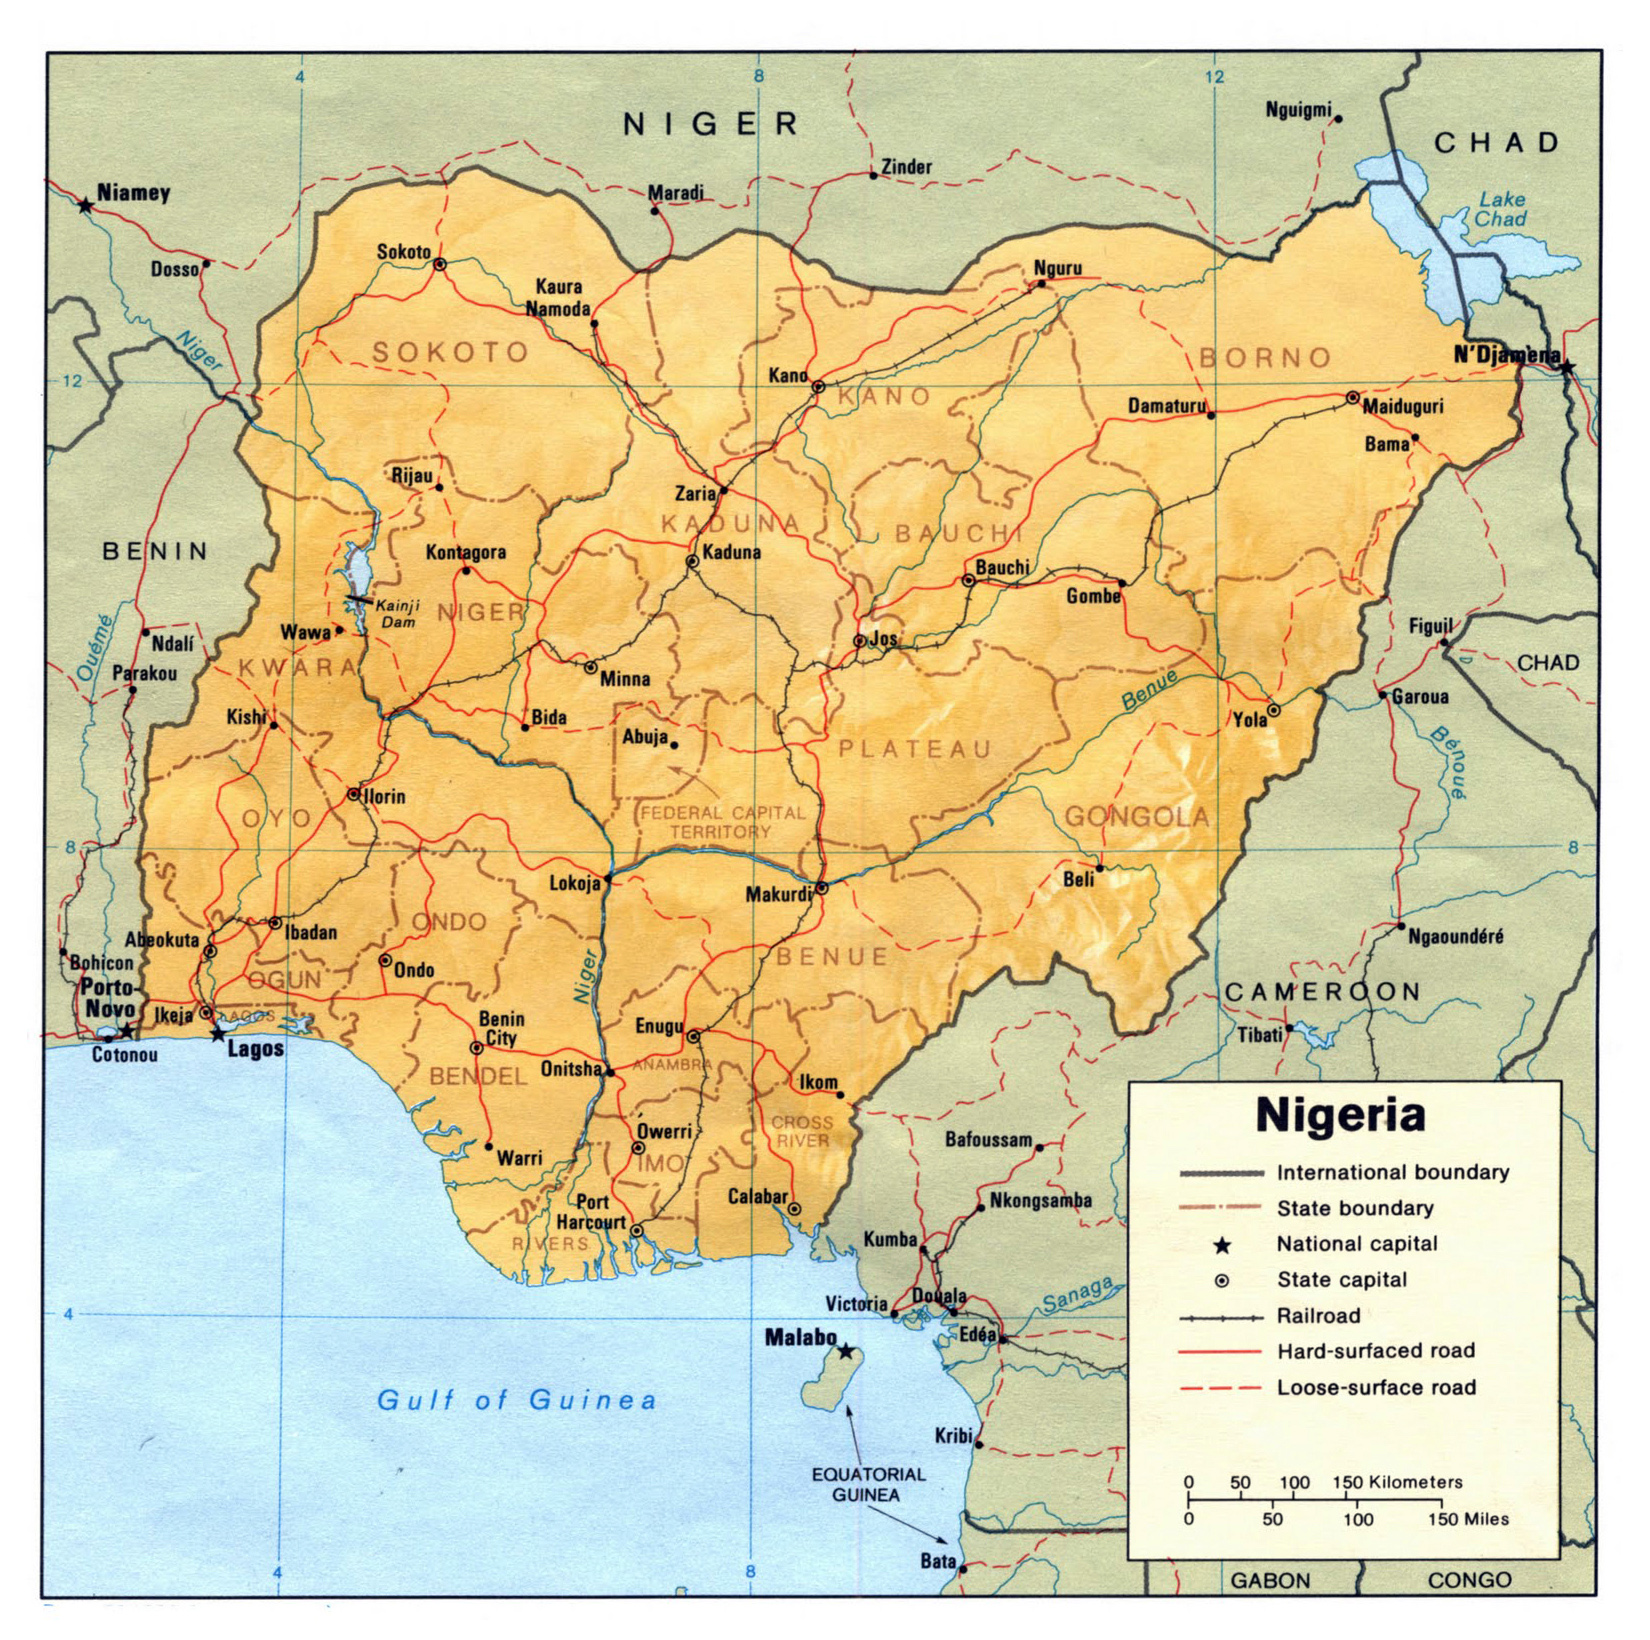 Nigeria political and relief map Political and relief map of